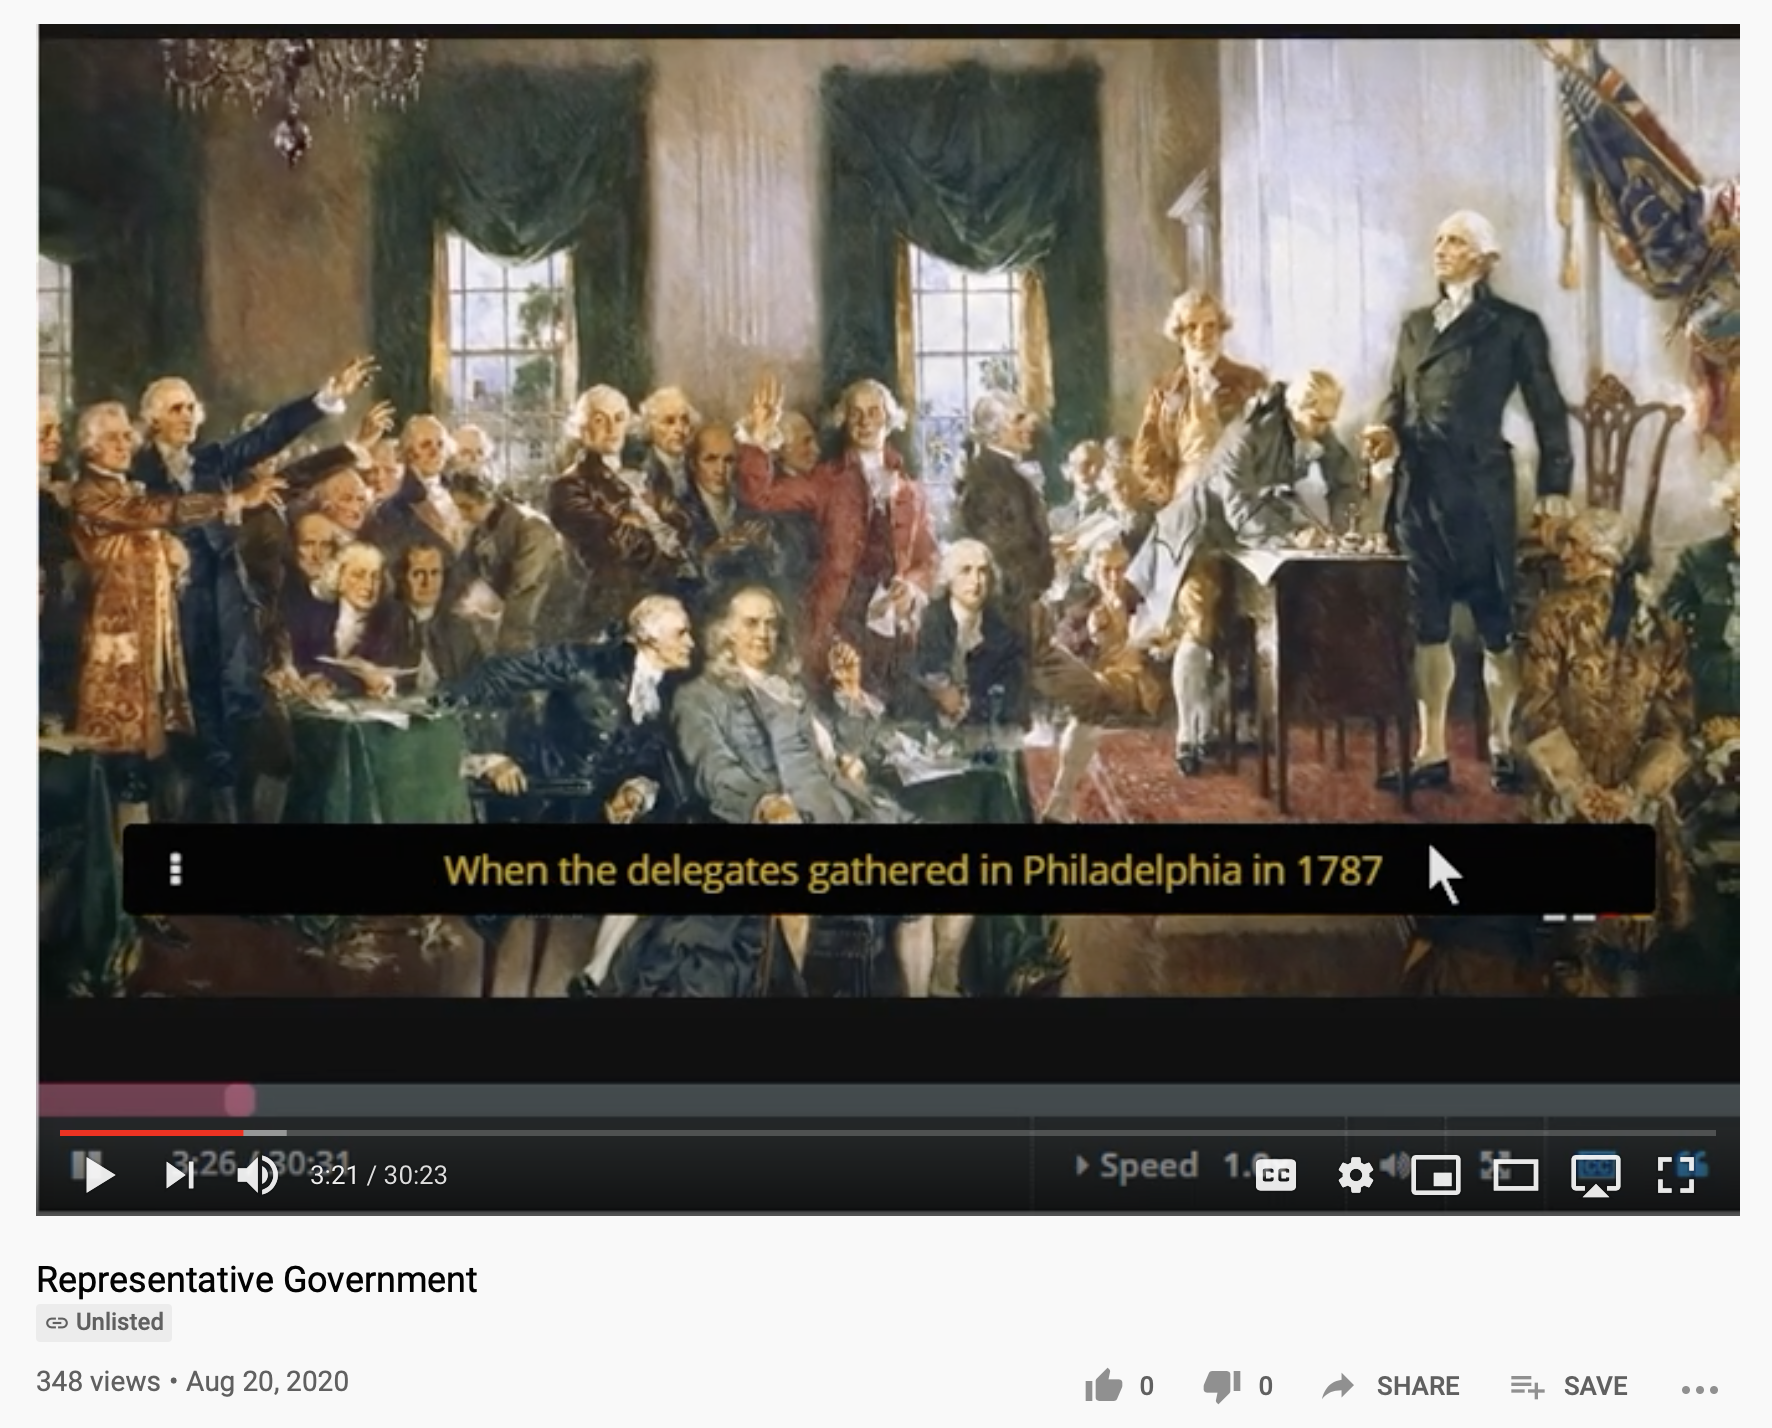 VIdeo Lecture by Harvard Professor, William Patterson, on Representative Government available on YouTube of his HarvardX/EdX page.